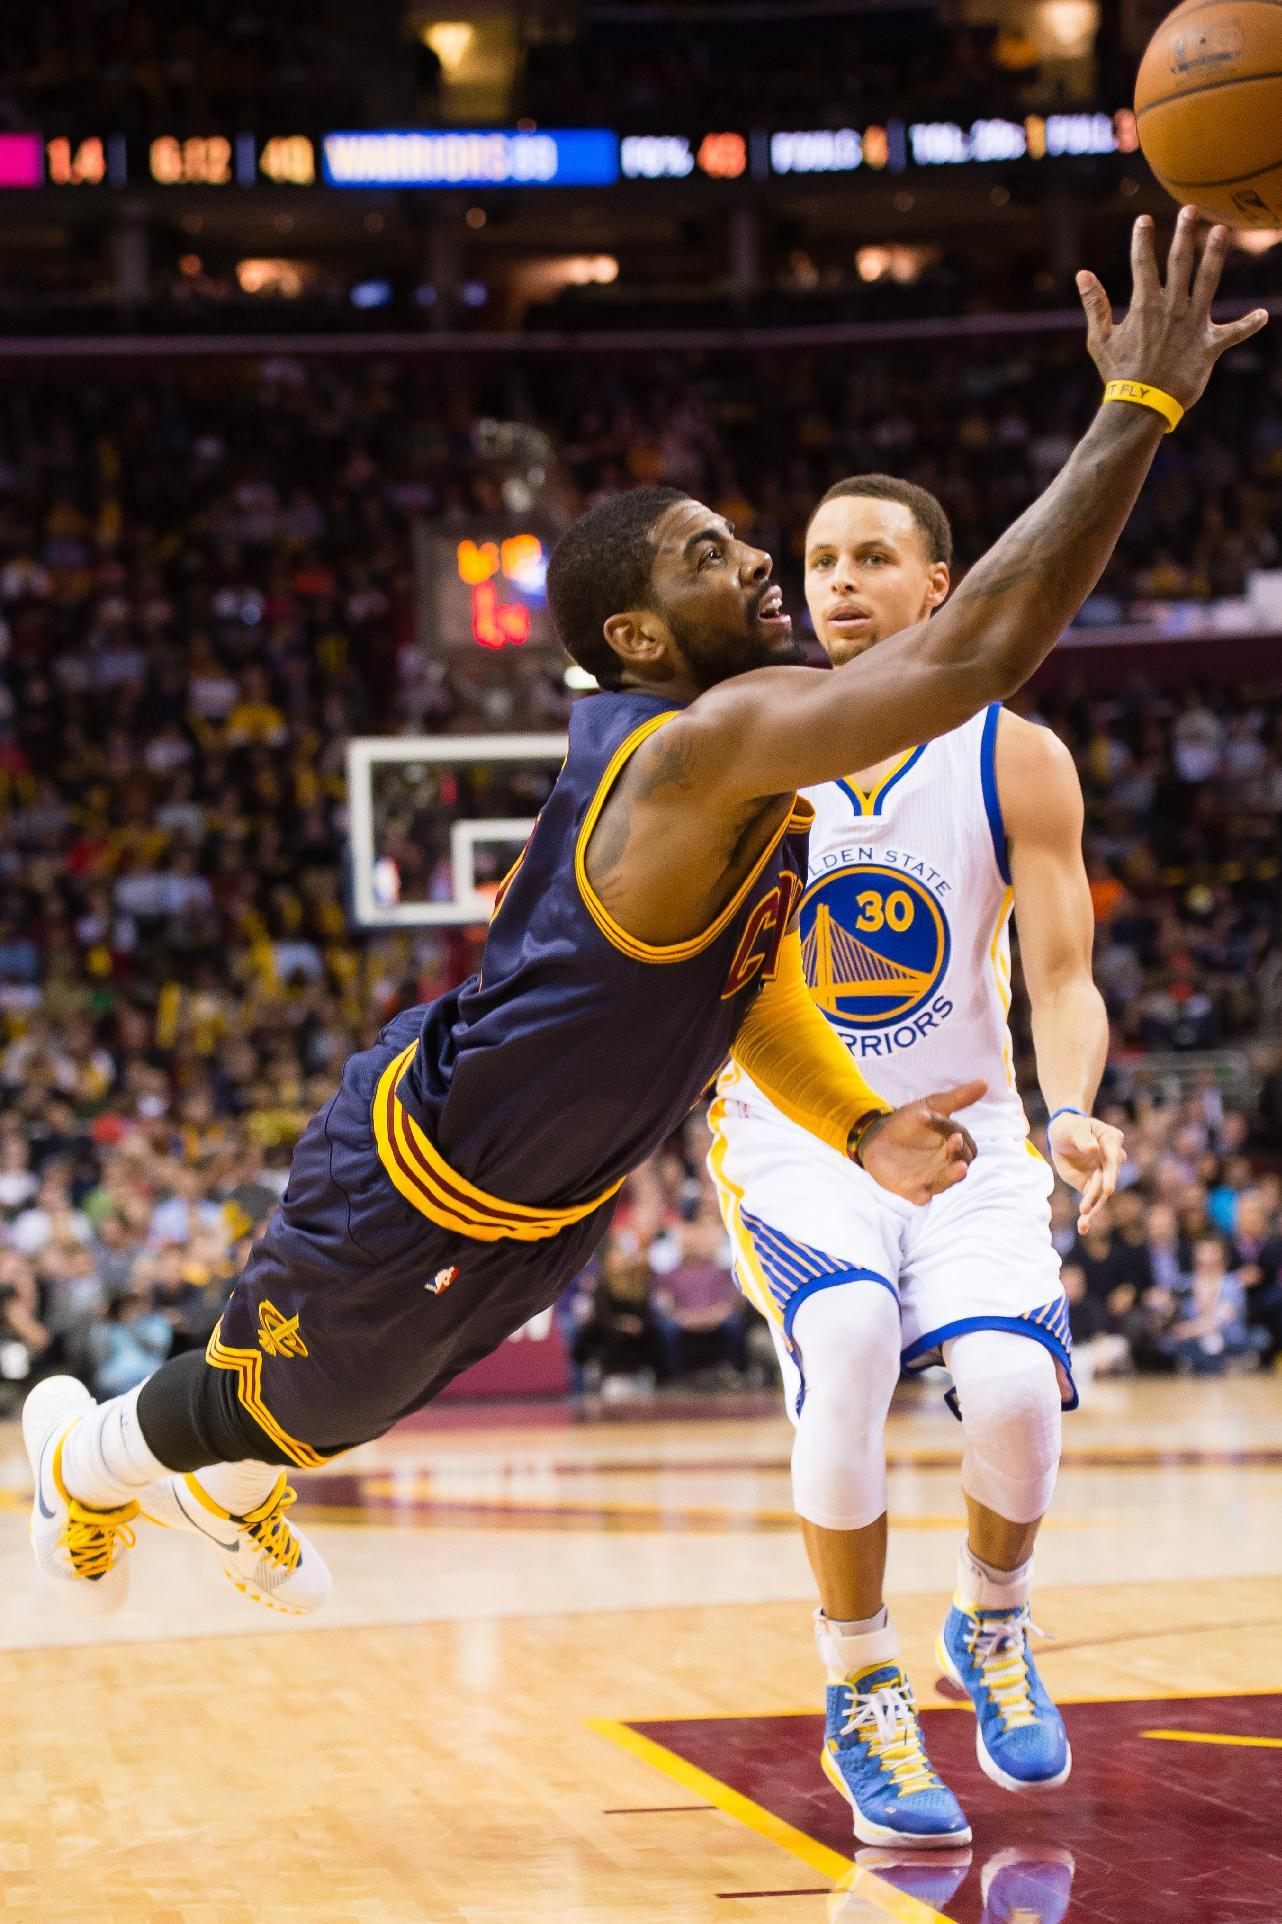 Cavaliers' Irving to miss second game with shoulder injury